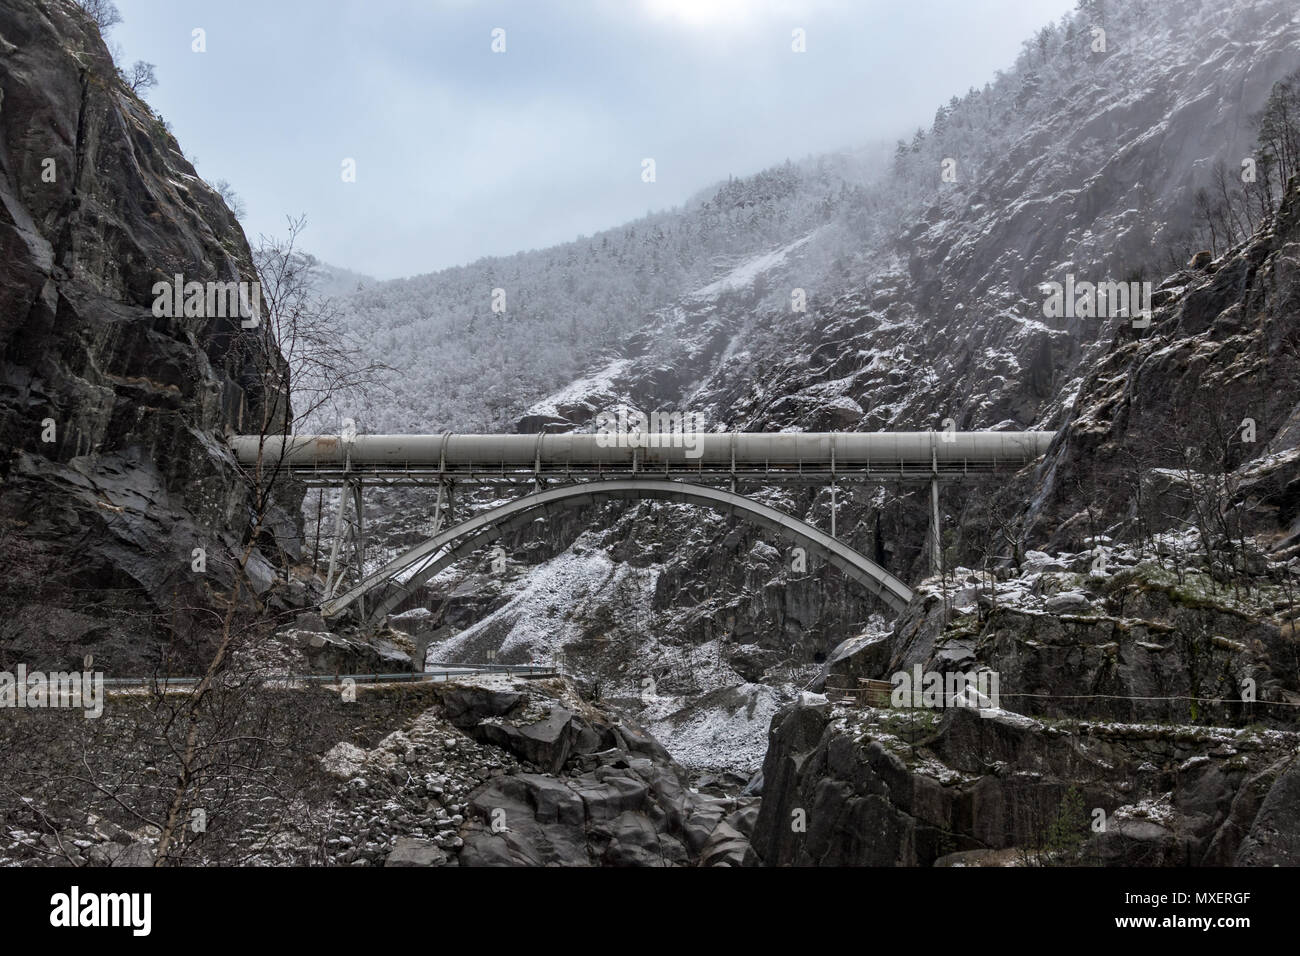 Pipeline canyon winter rocks bridge mountains - Stock Image